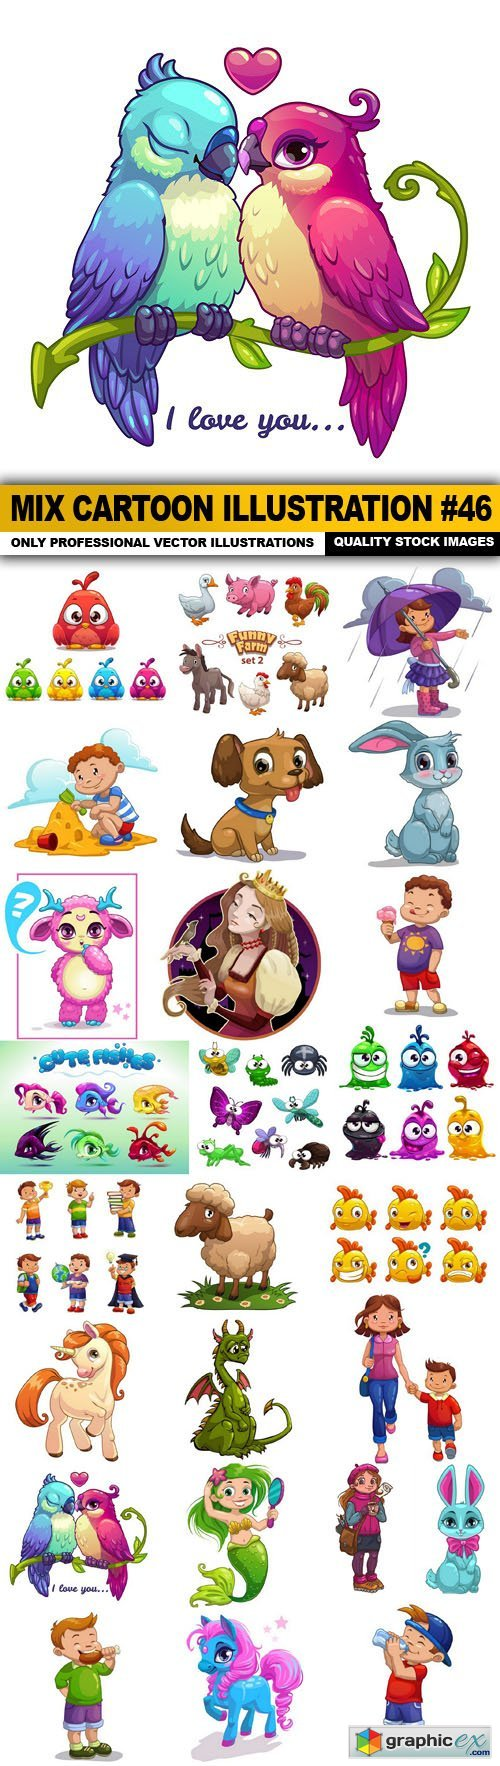 Mix cartoon Illustration #46 - 25 Vector